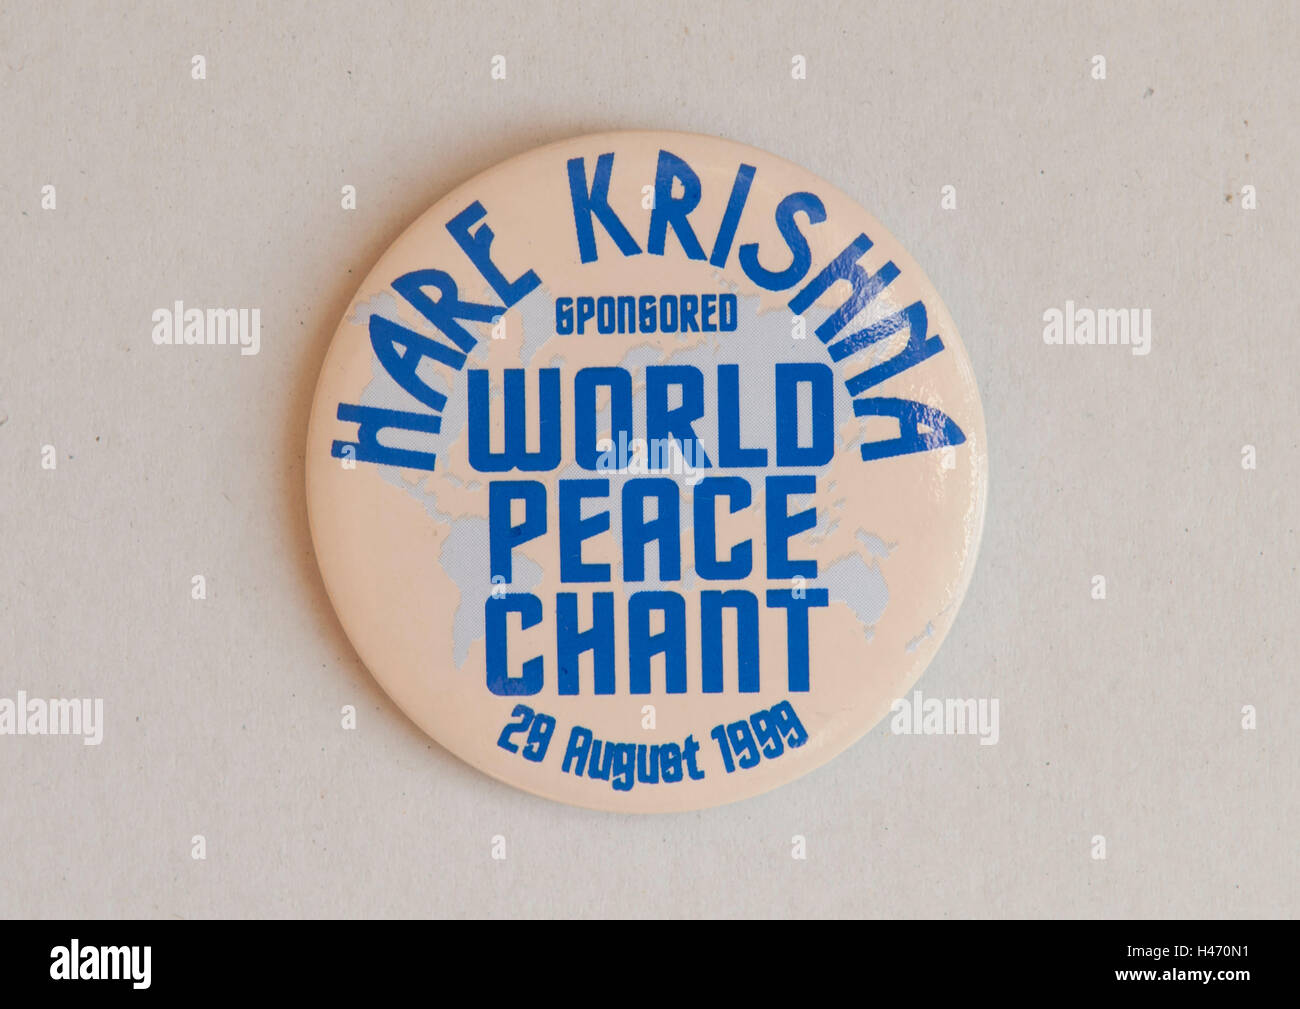 La paix mondiale parrainé Hare Krishna Chant 28 Août 1989 London UK HOMER SYKES Photo Stock